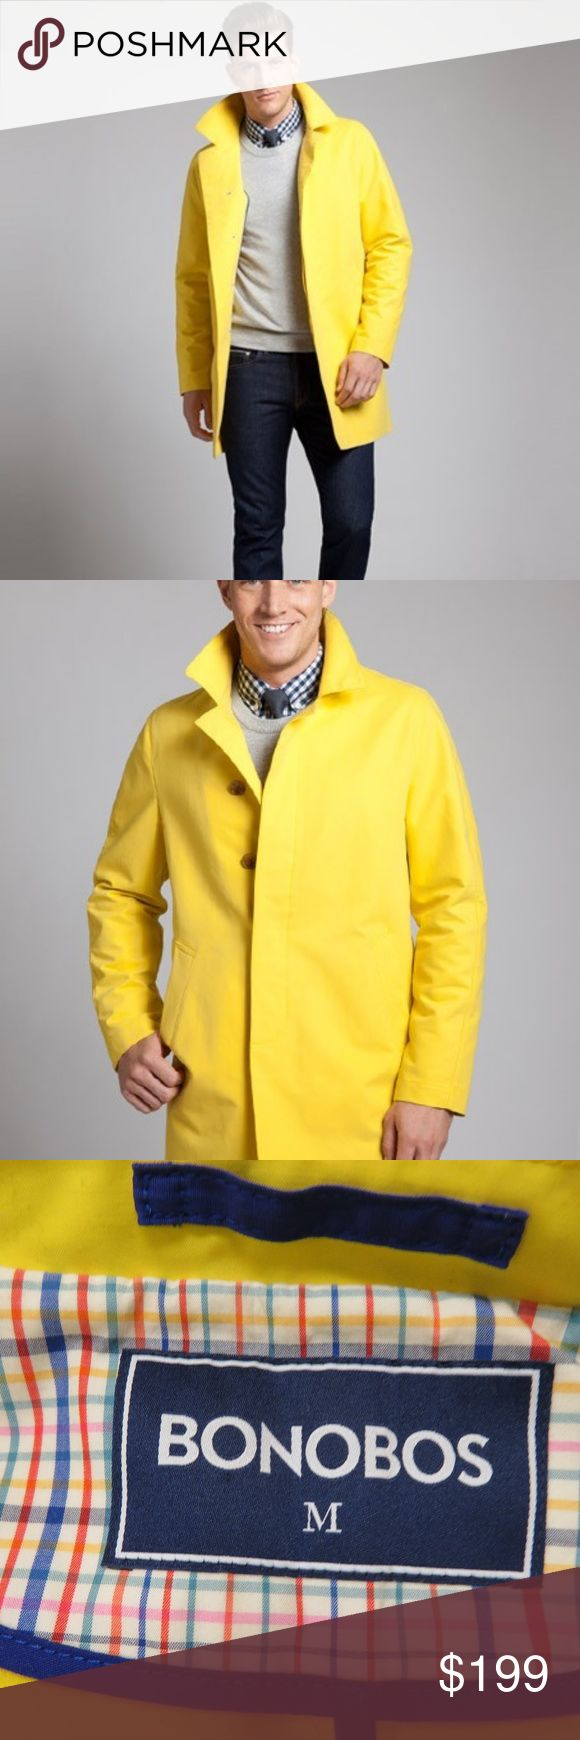 "Bonobos Shamus Rain Coat Yellow Mens Medium Trench New Bonobos men's size medium yellow Shamus rain trench coat.  Great looking coat!  I ship fast and package securely for safe delivery!  Measurements Length 39.5"" Armpit to Armpit 22""  The retail price is $300.  The coat has dirt on it from storage, but it is new.  The pockets are still sewn shut. Bonobos Jackets & Coats Trench Coats"